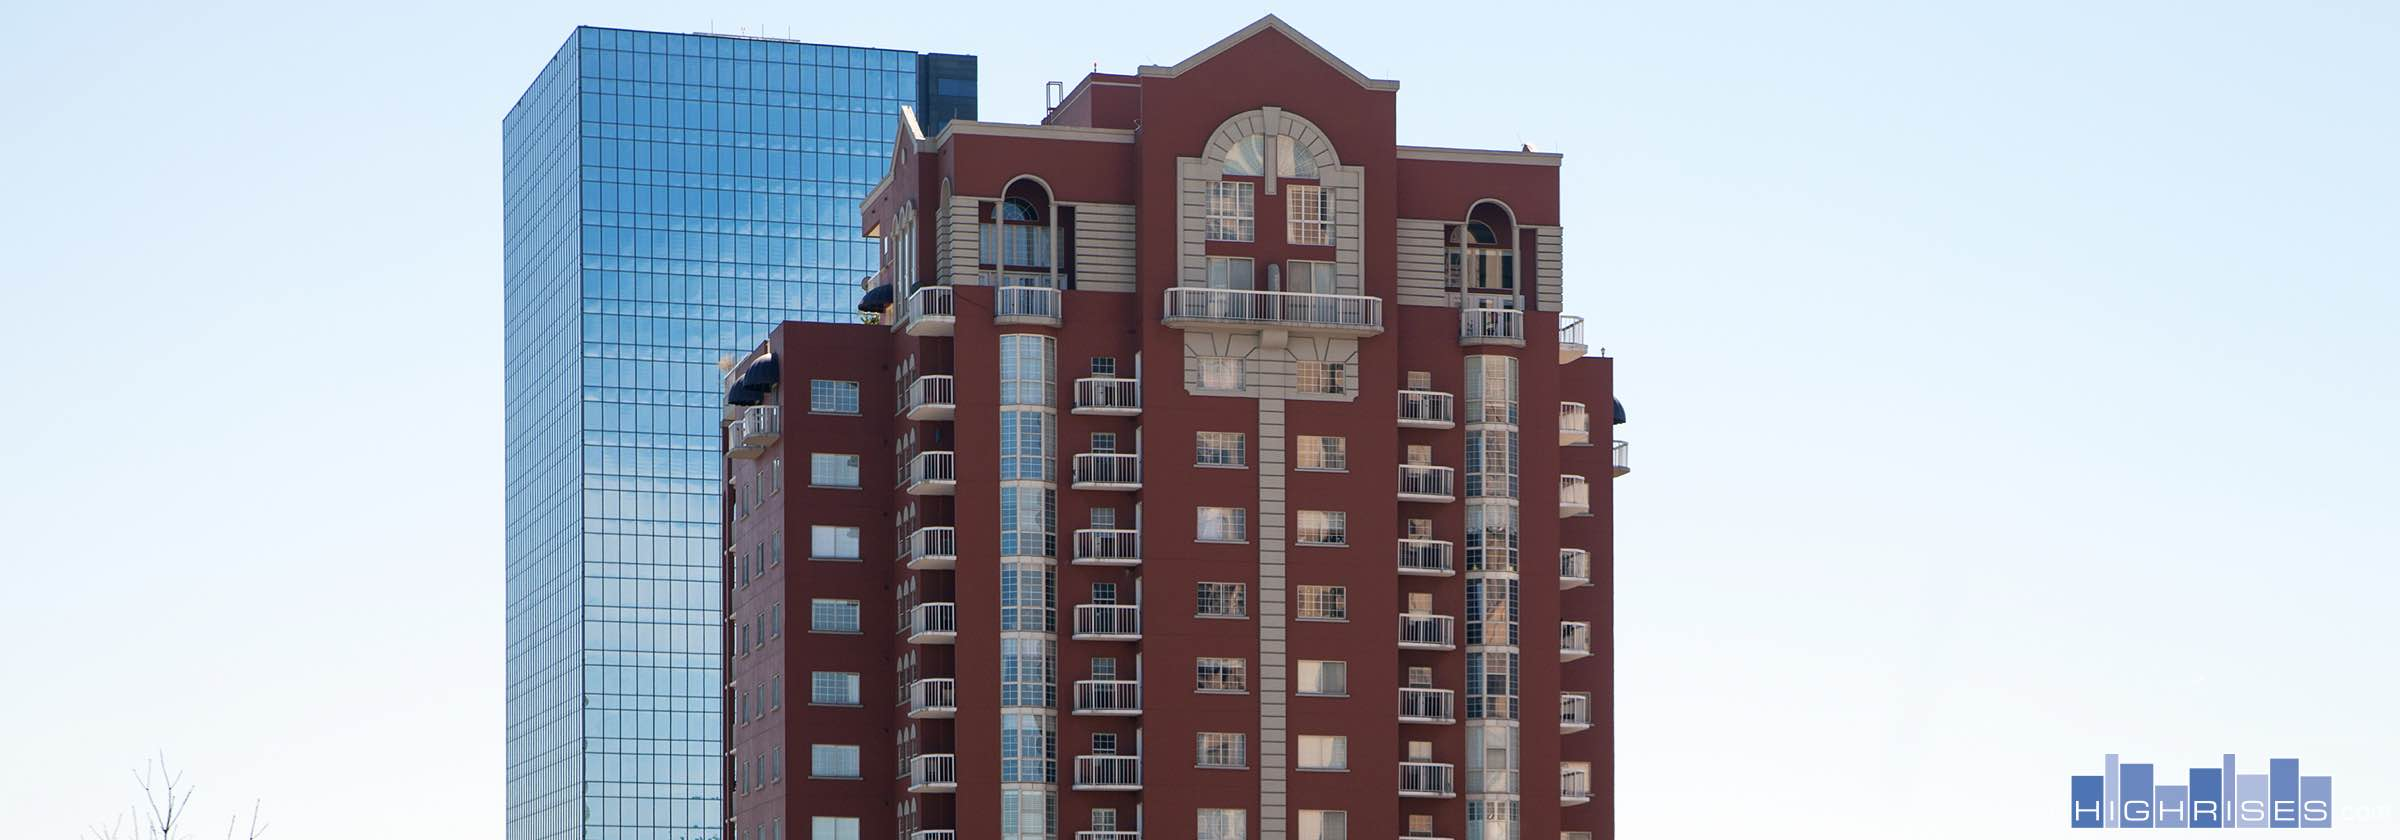 Villa at Buckhead Heights Condos of Atlanta, GA | 3435 Kingsboro Rd NE